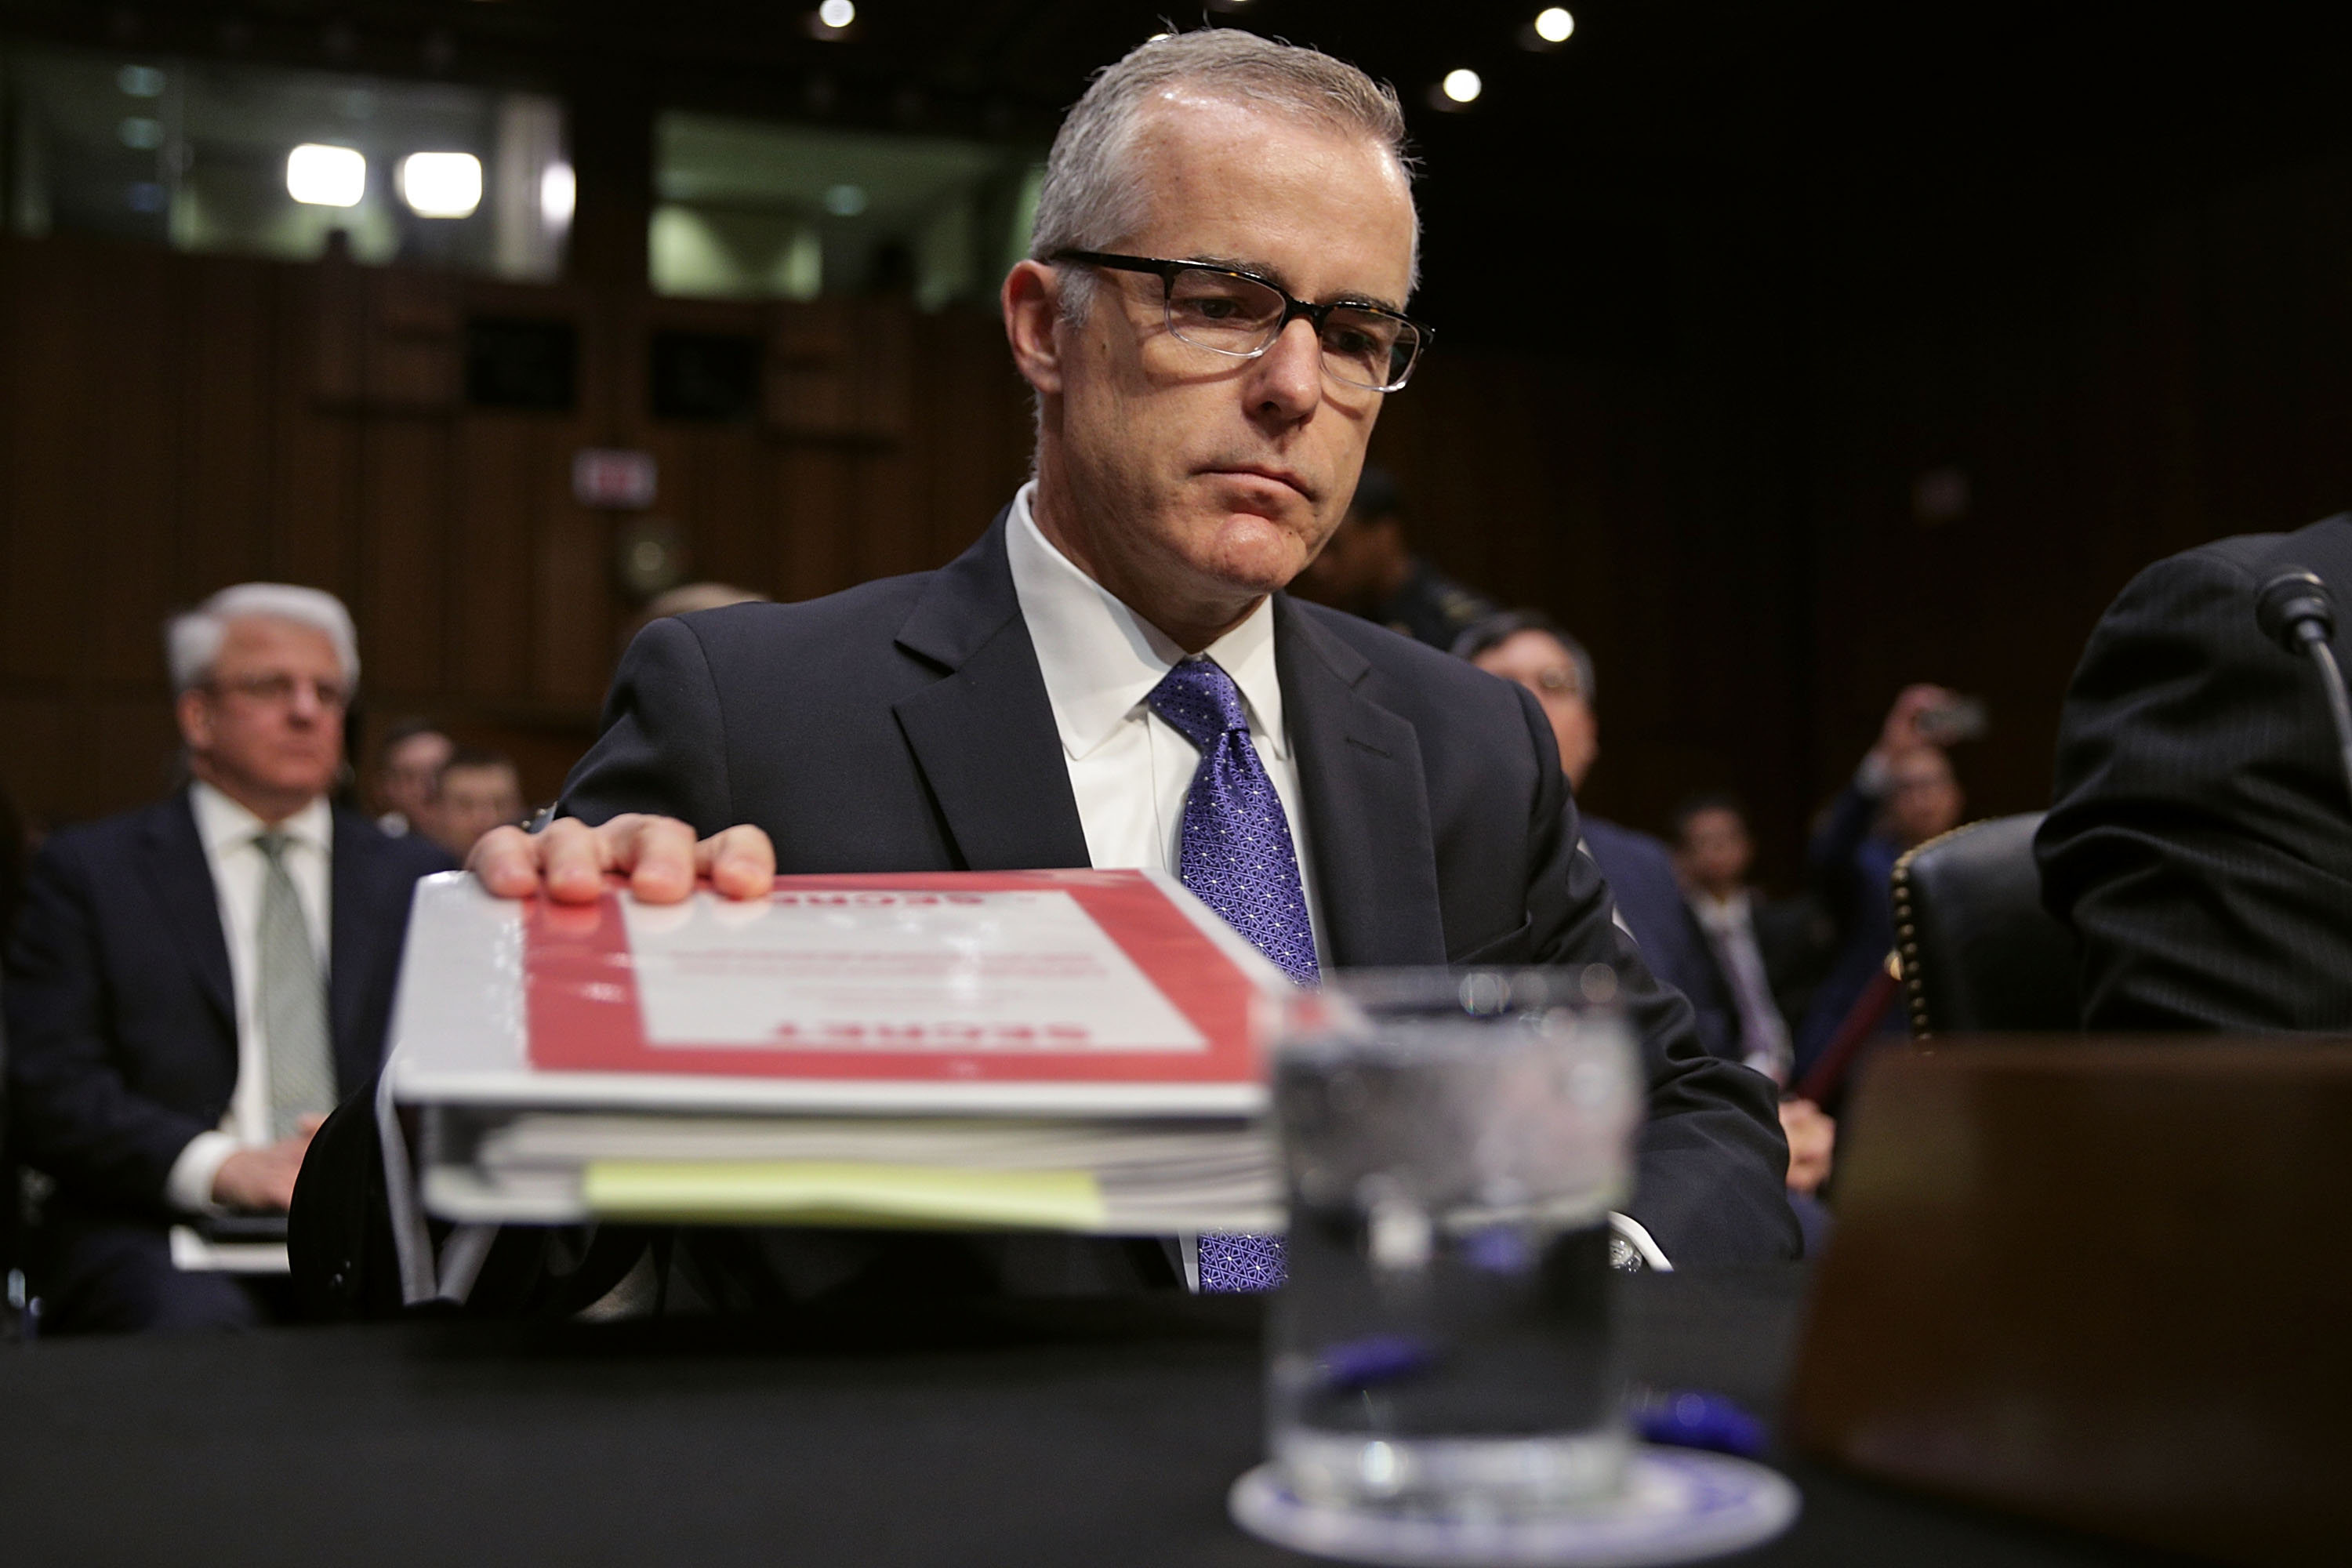 WASHINGTON, DC - MAY 11: Acting FBI Director Andrew McCabe and the other heads of the U.S. intelligence agencies prepare to testify before the Senate Intelligence Committee in the Hart Senate Office Building on Capitol Hill May 11, 2017 in Washington, DC. The intelligence officials were questioned by the committee during the annual hearing about world wide threats to United States' security. (Photo by Alex Wong/Getty Images)